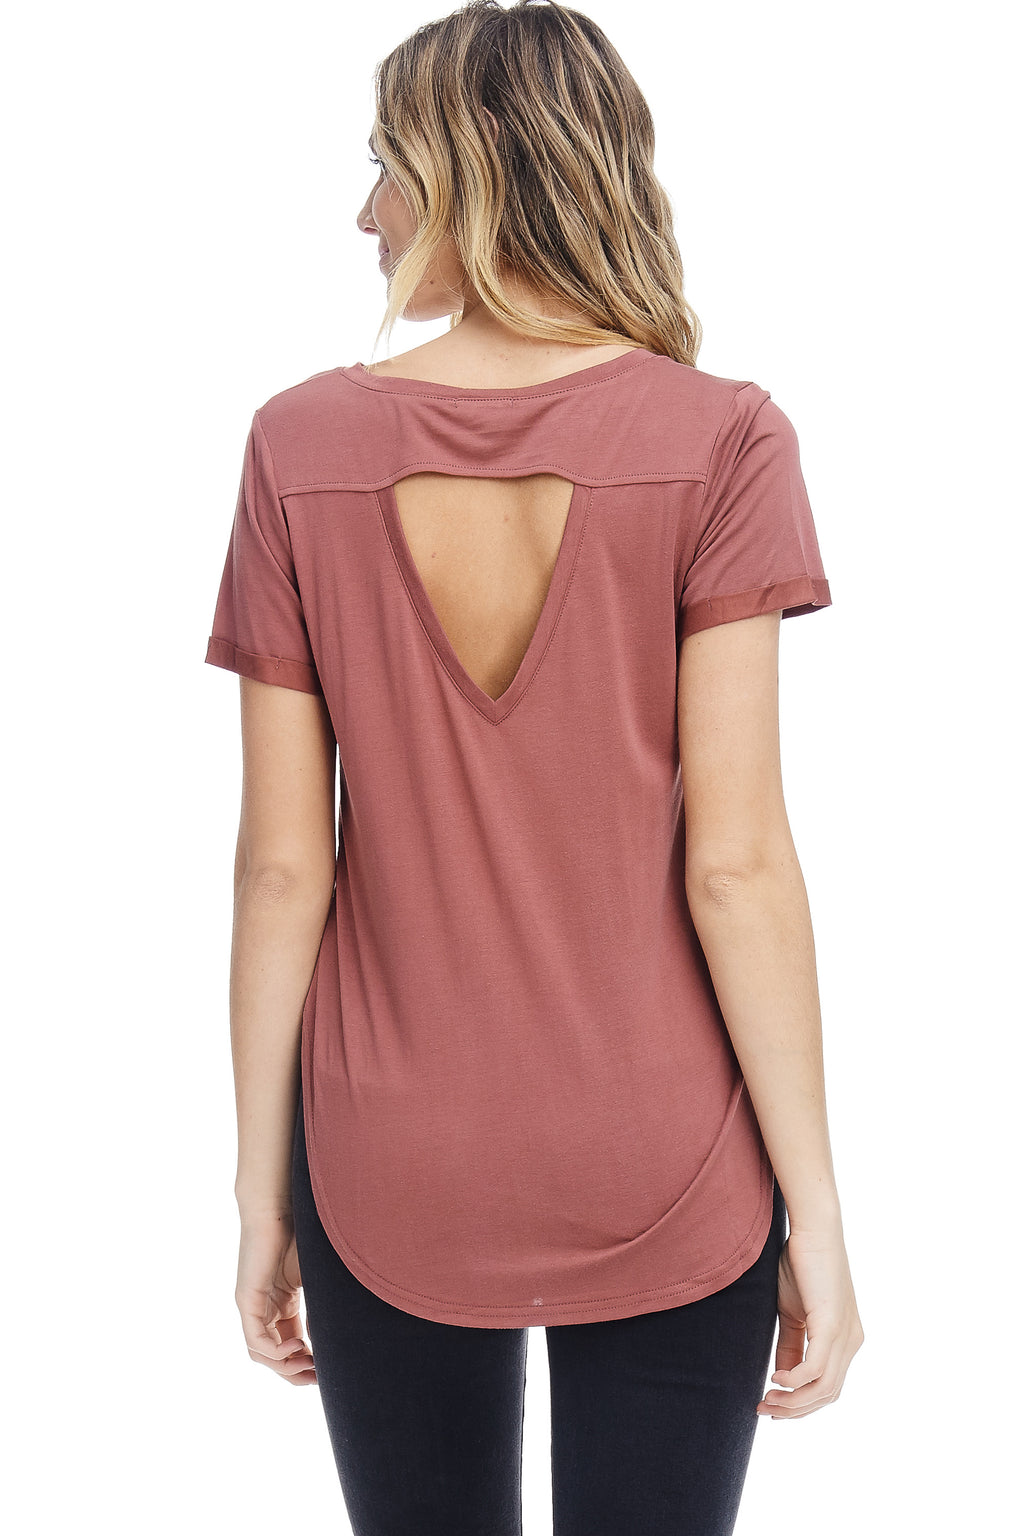 W18-110 Cut-Out Tee